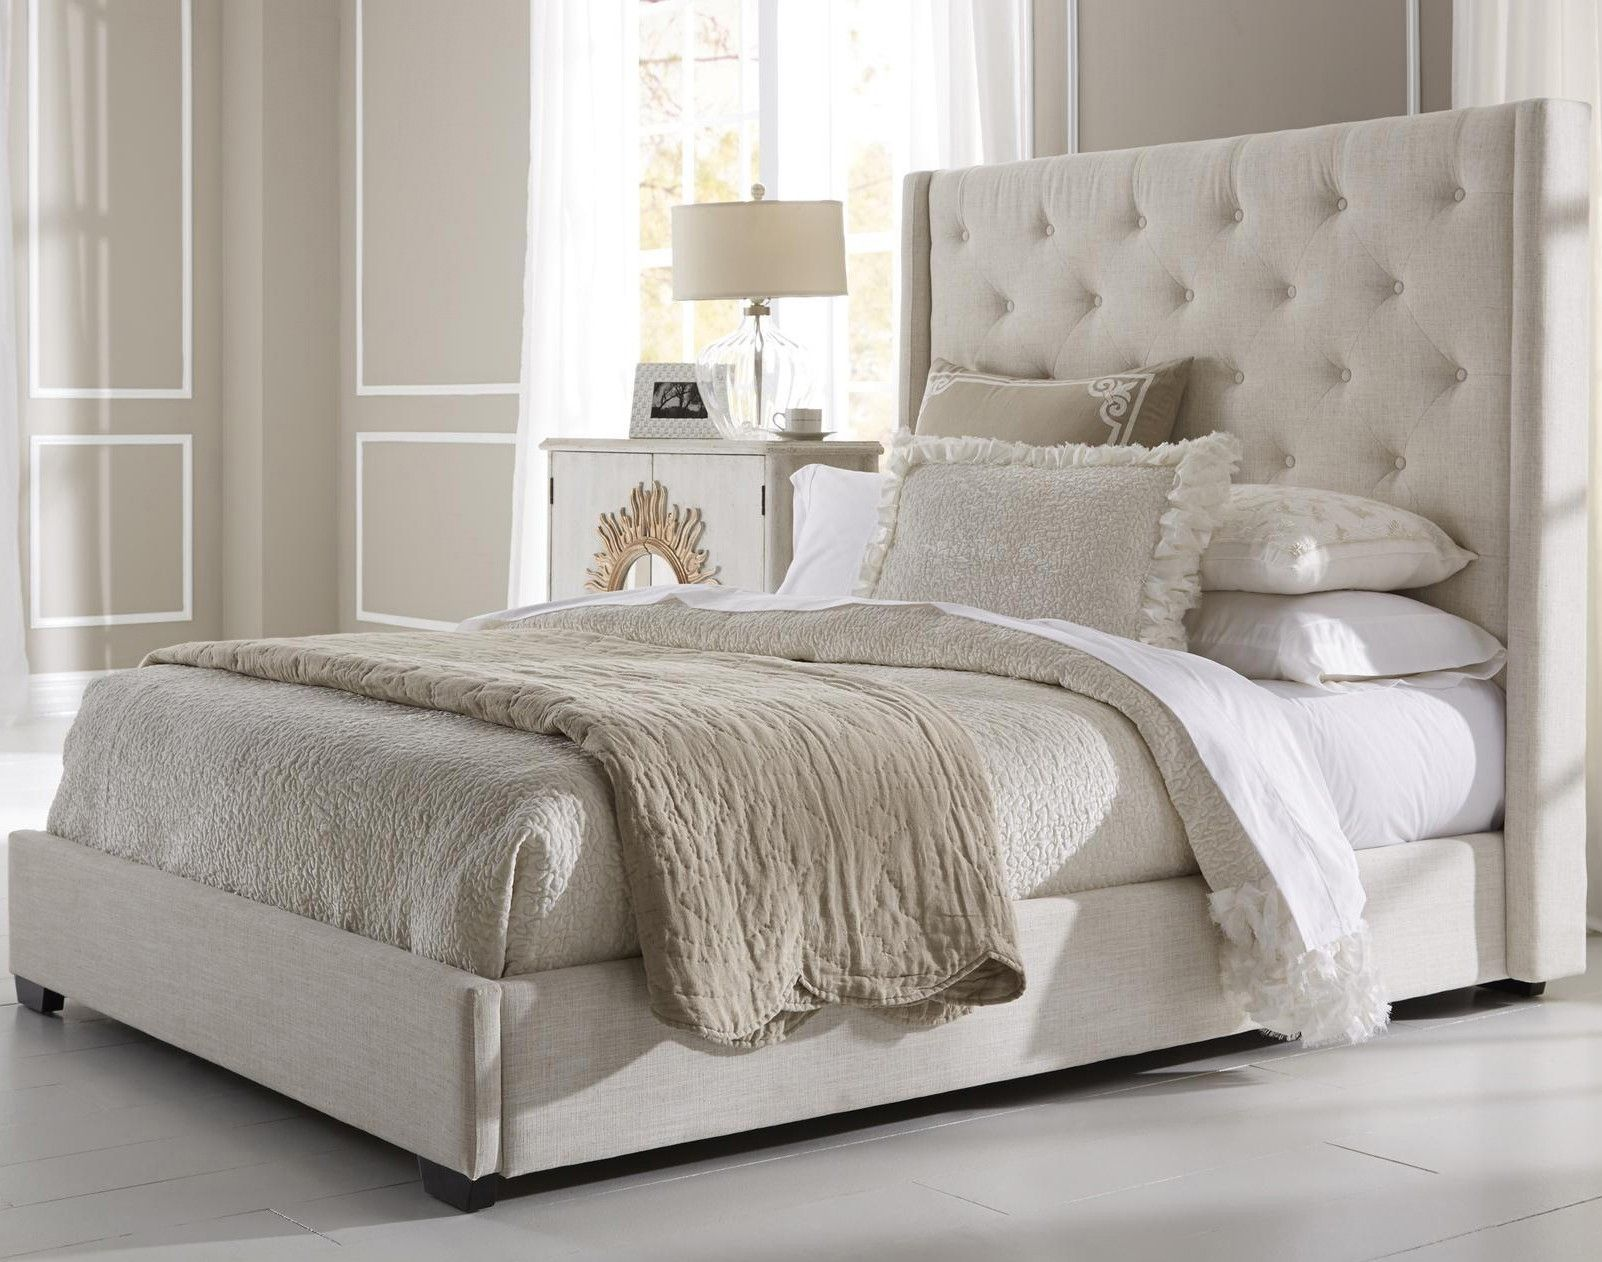 Contemporary shelter fabric upholstered bed in cream by pri king headboard footboard frame